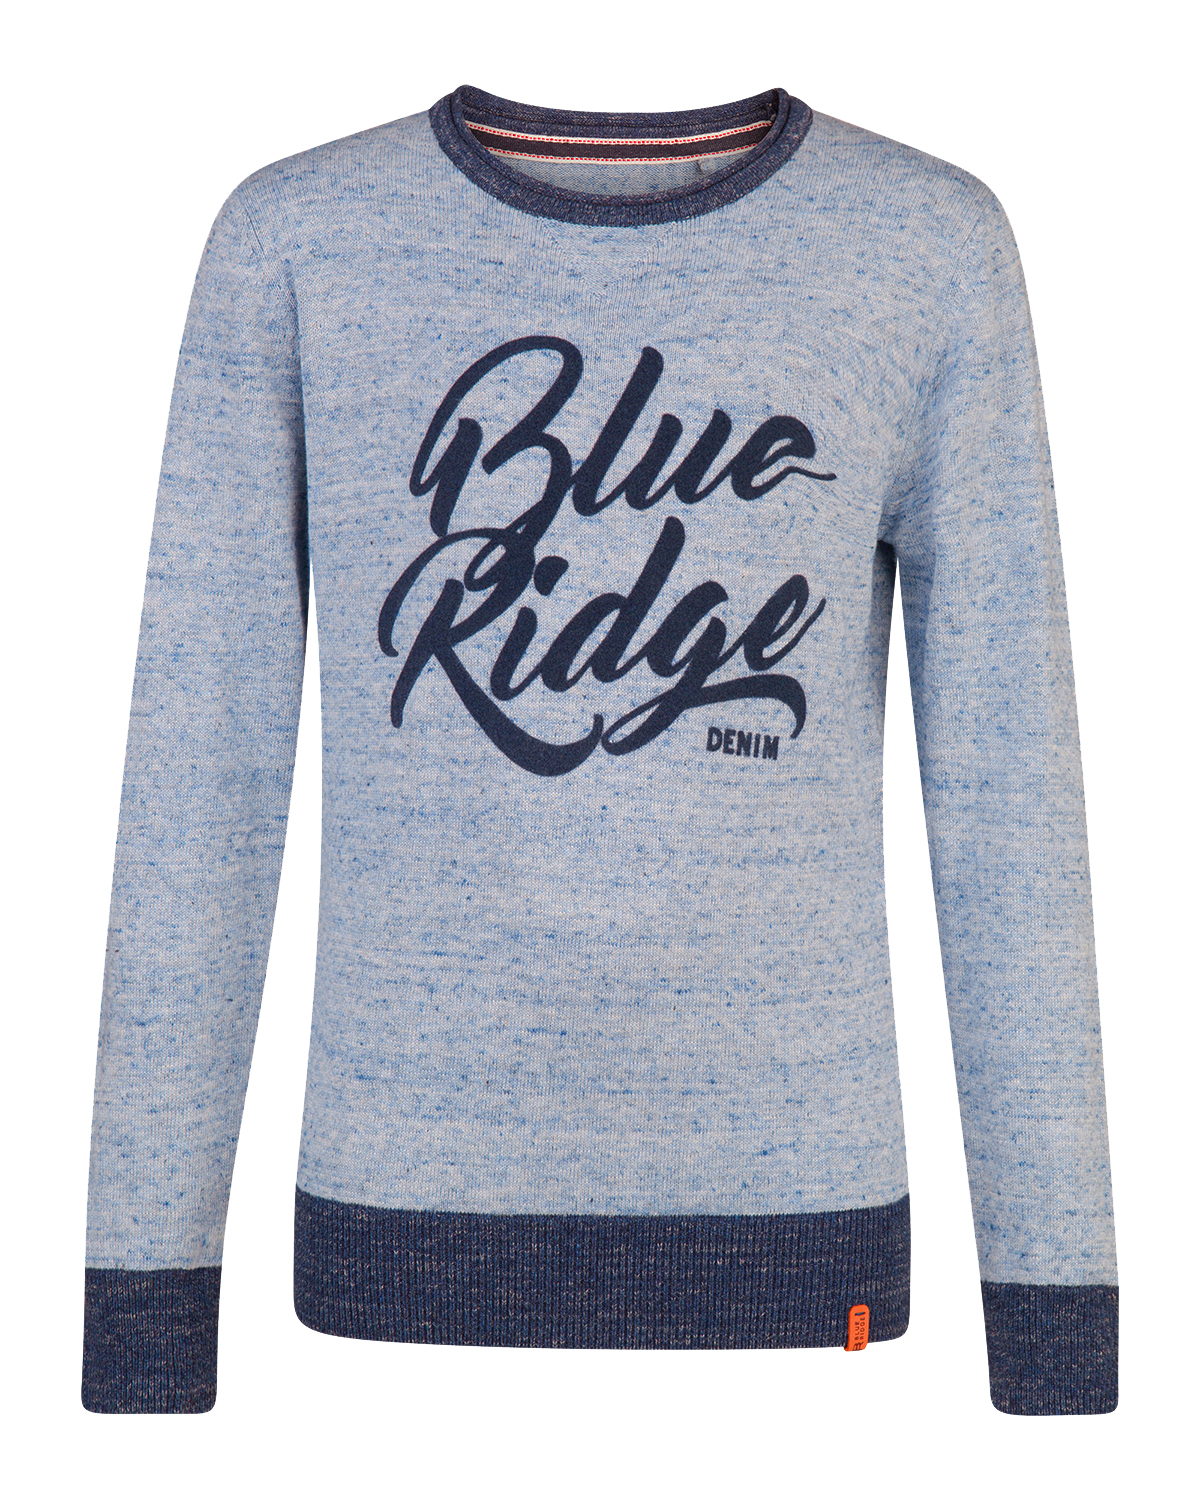 Jongens blue ridge print sweater